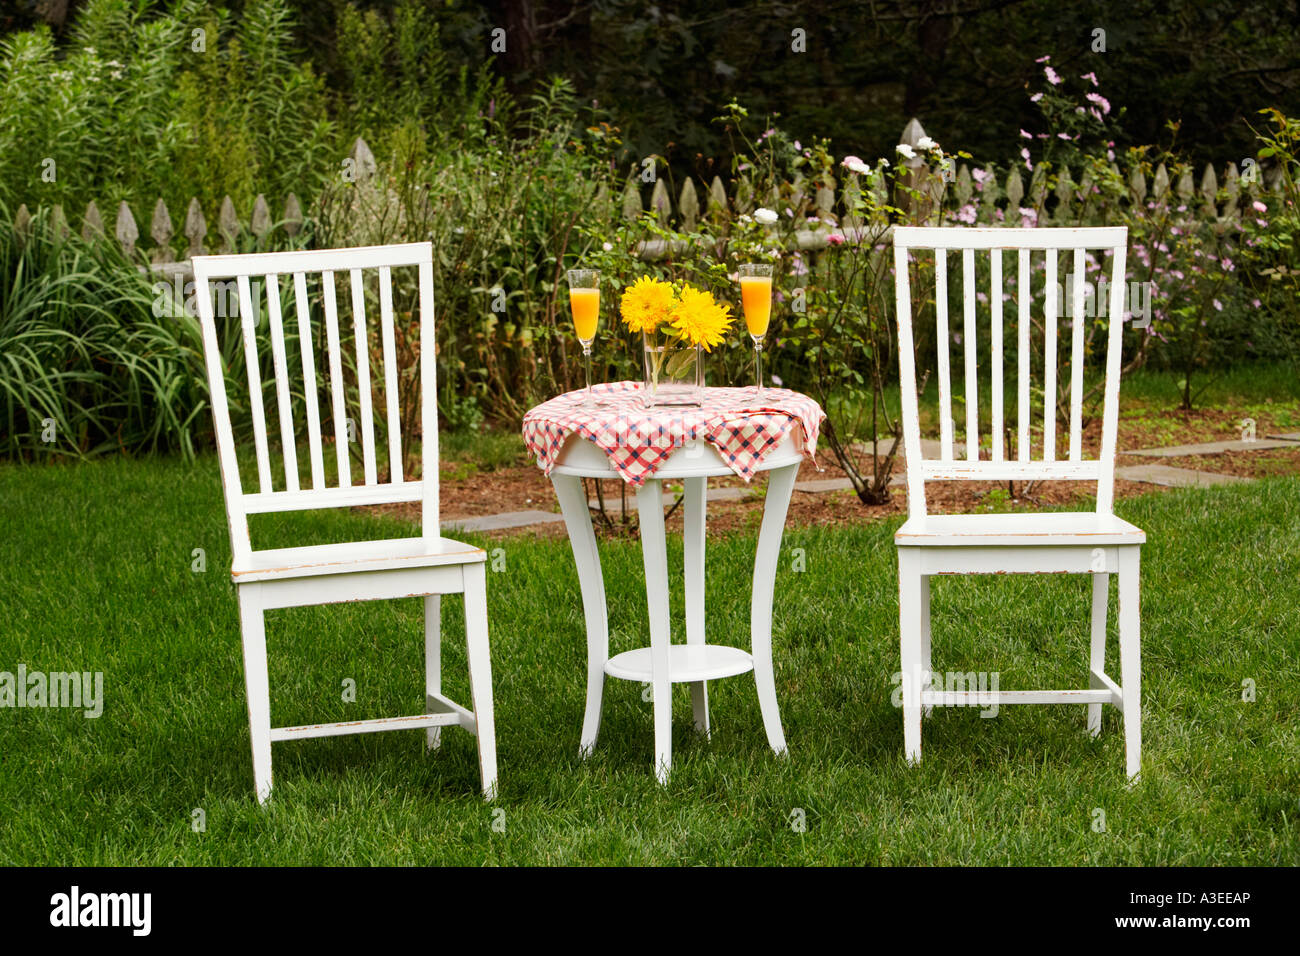 Two chairs and a table in a garden & Two chairs and a table in a garden Stock Photo: 10761309 - Alamy